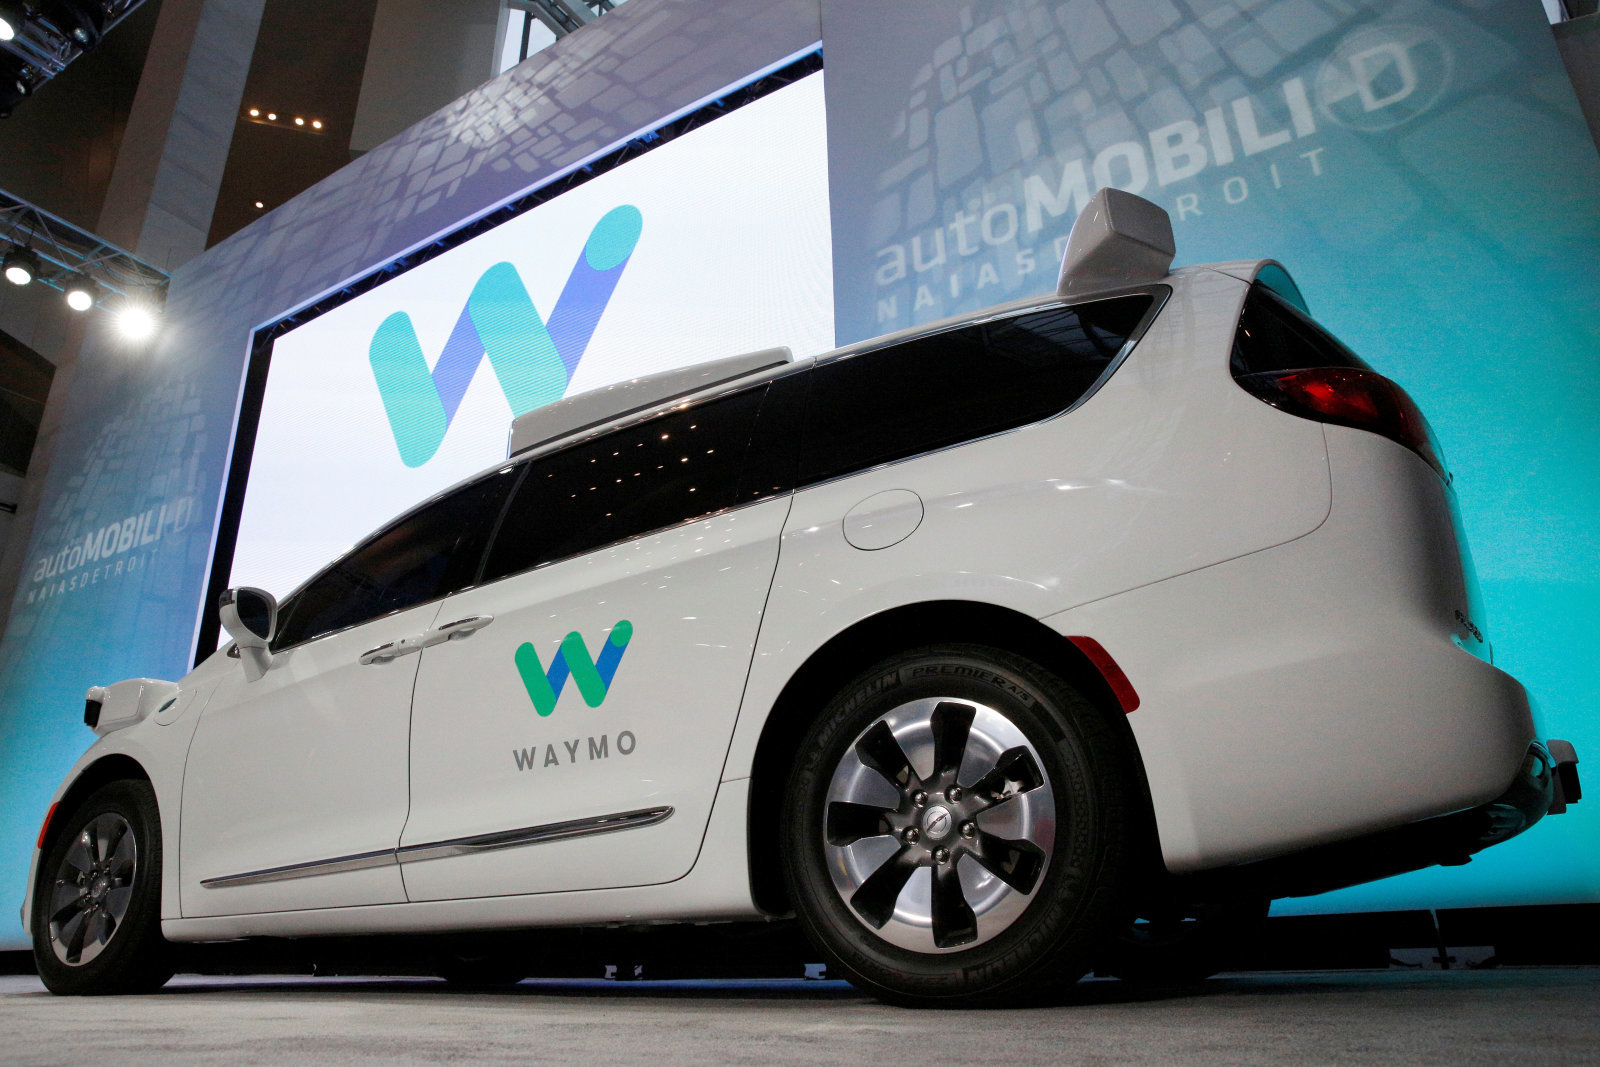 Uber considers Waymo partnership following lawsuit